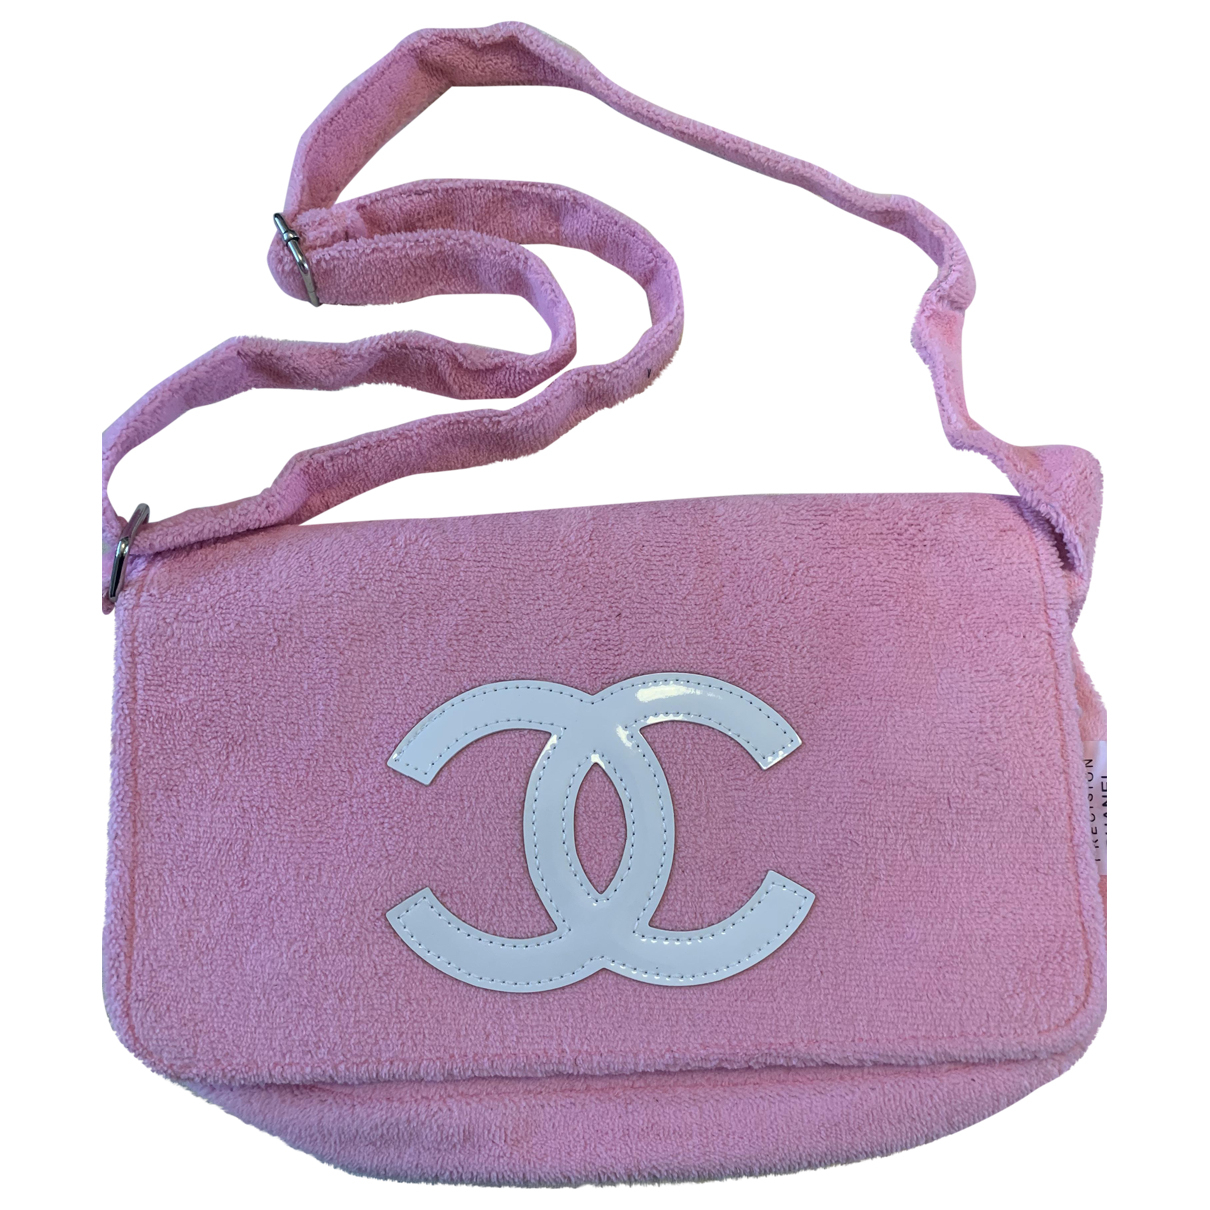 Chanel \N Pink handbag for Women \N